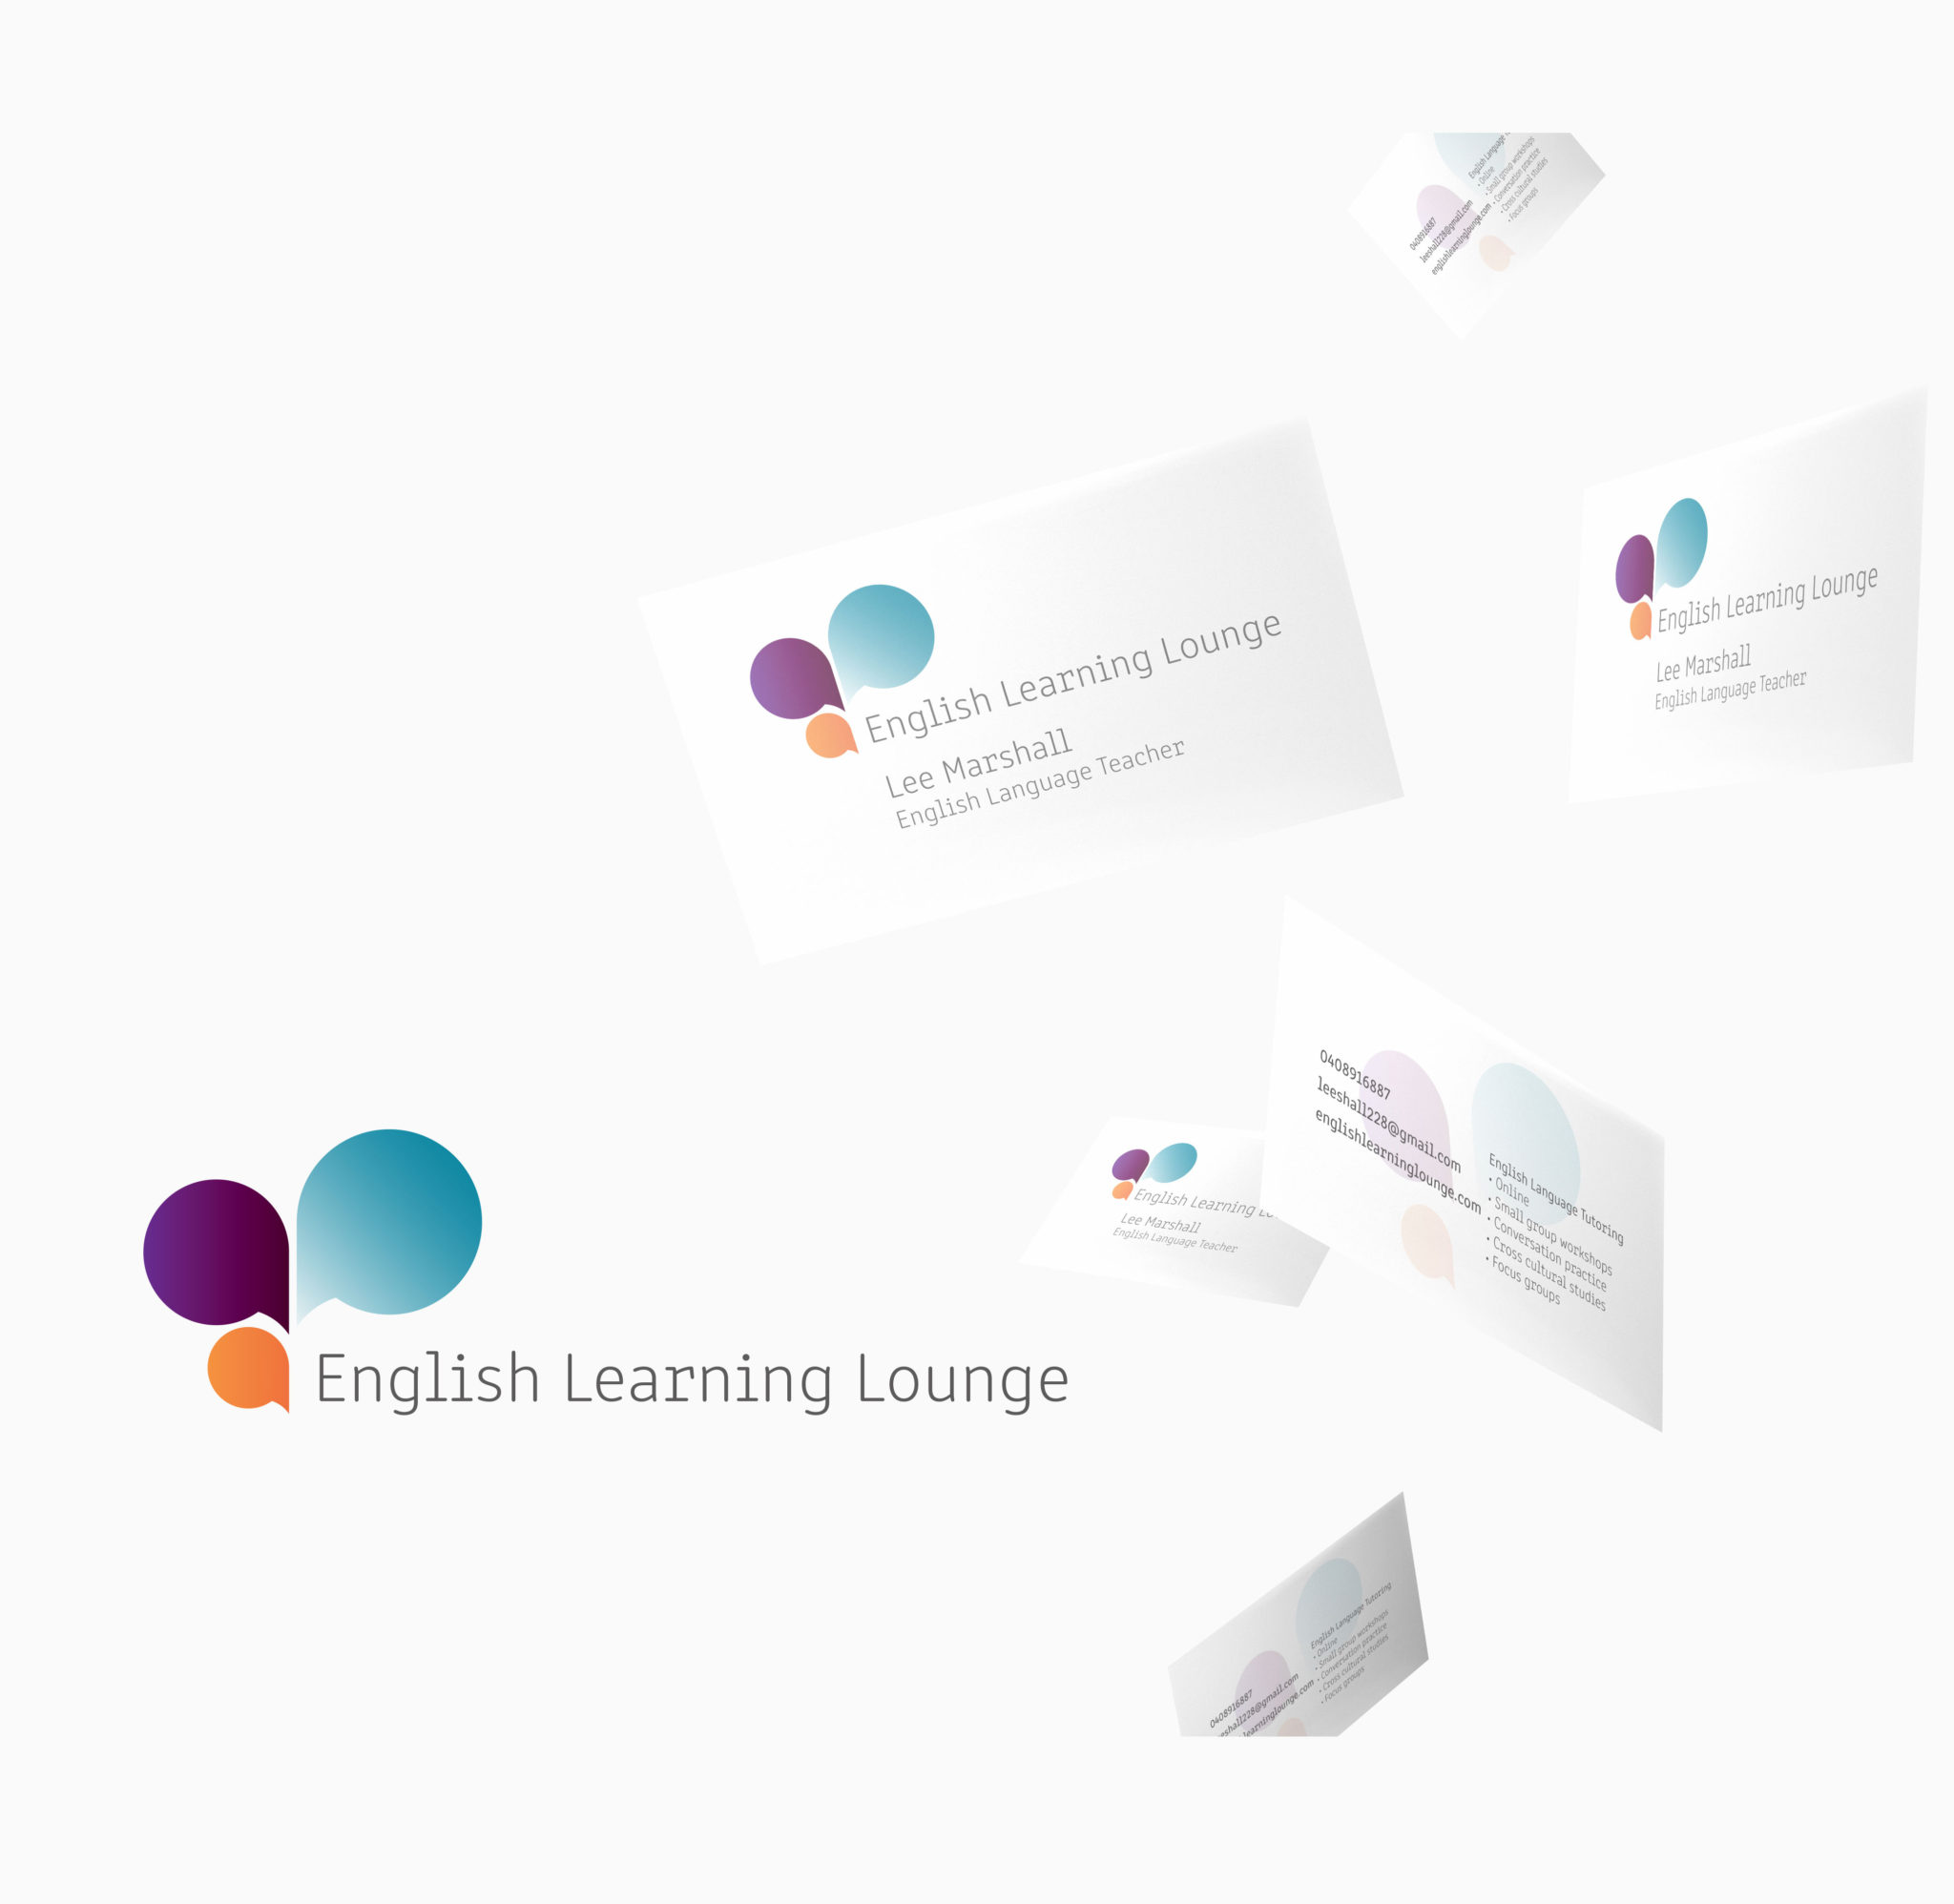 Logo Design For English Learning Lounge